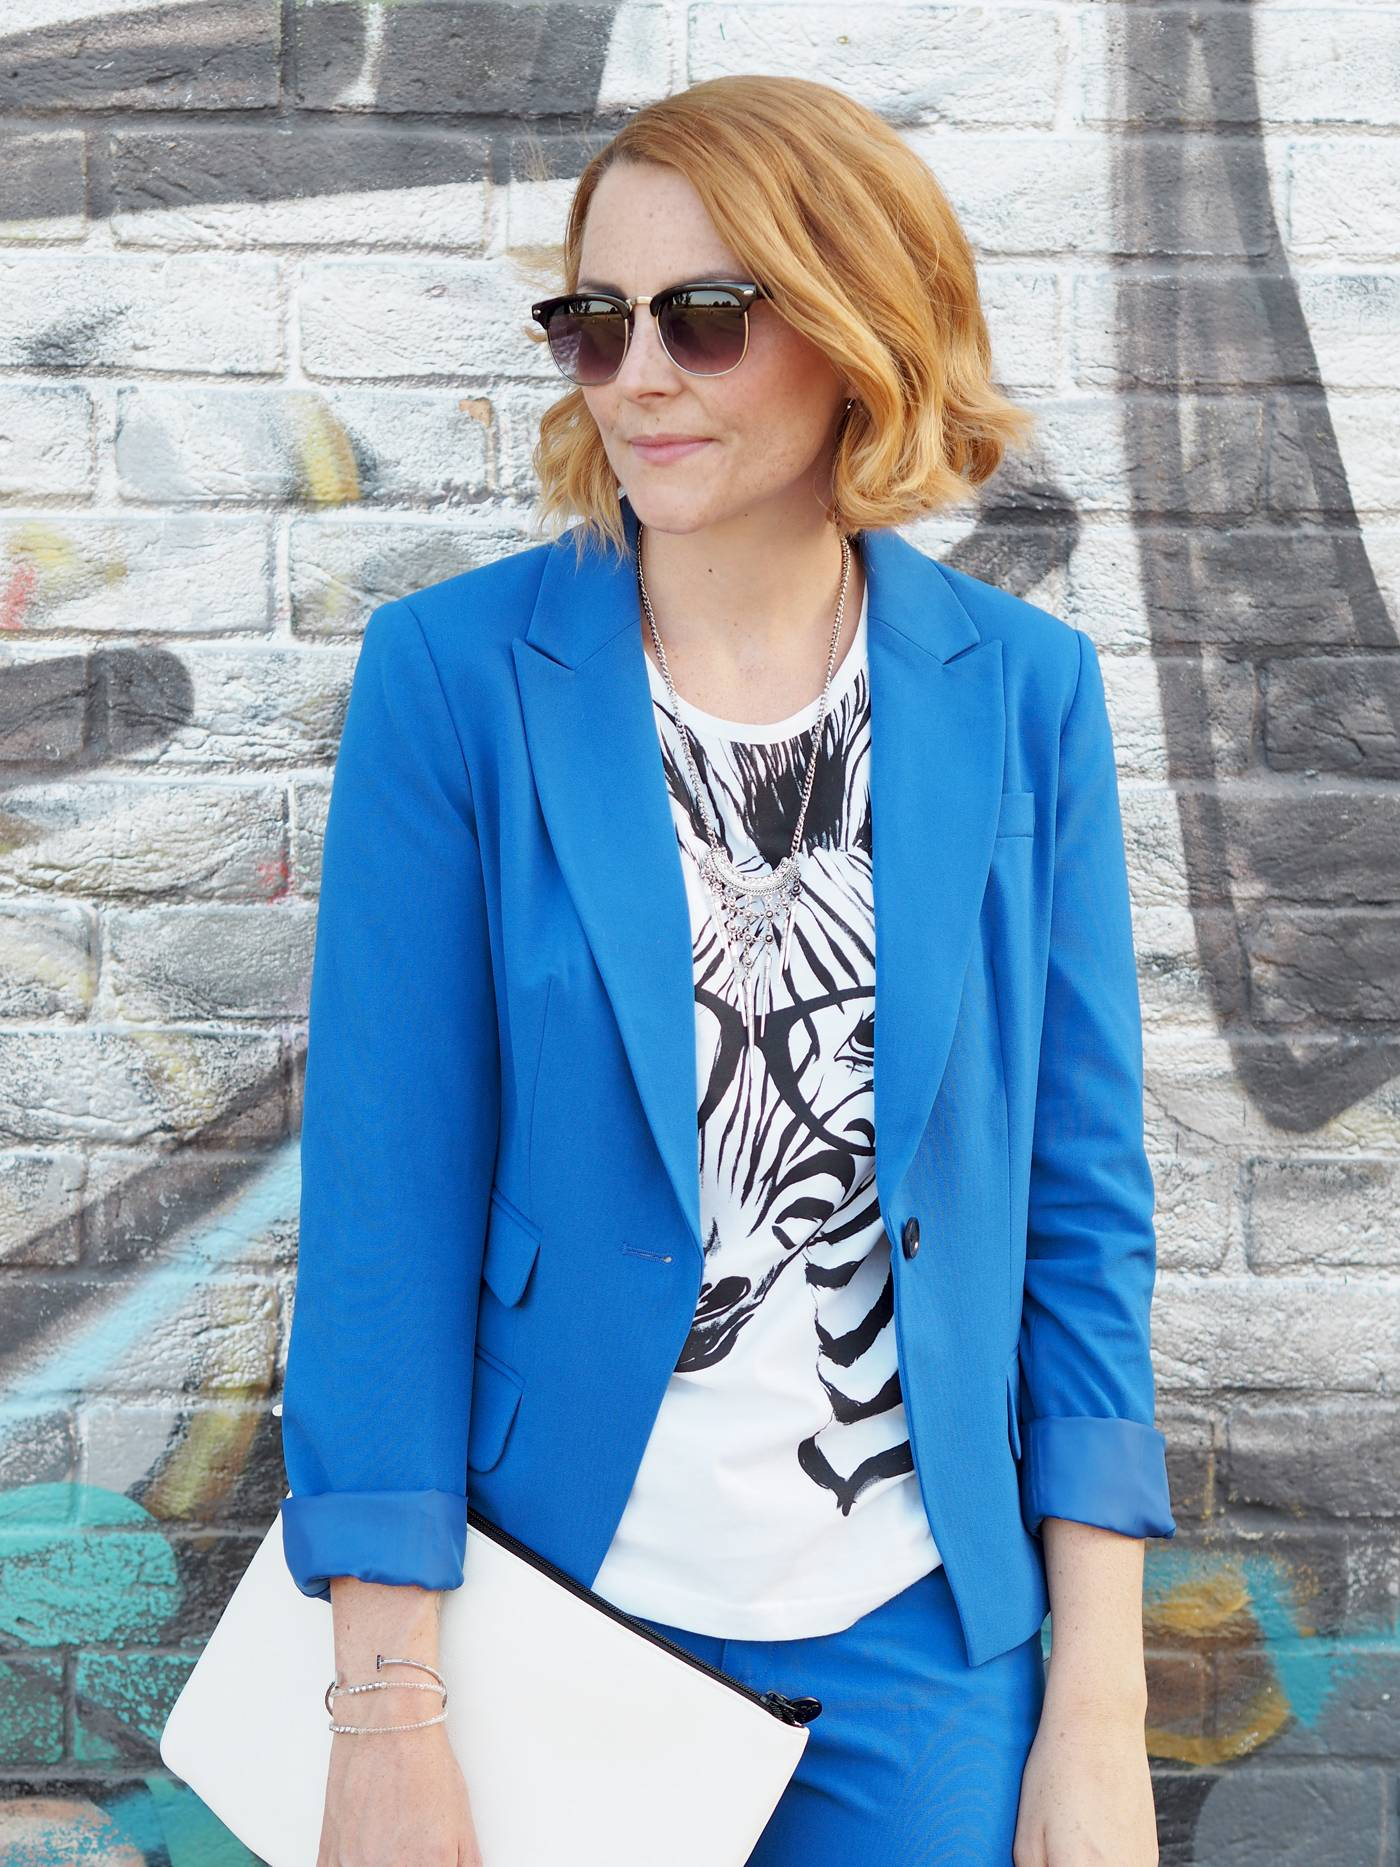 blue suit with monochrome tshirt